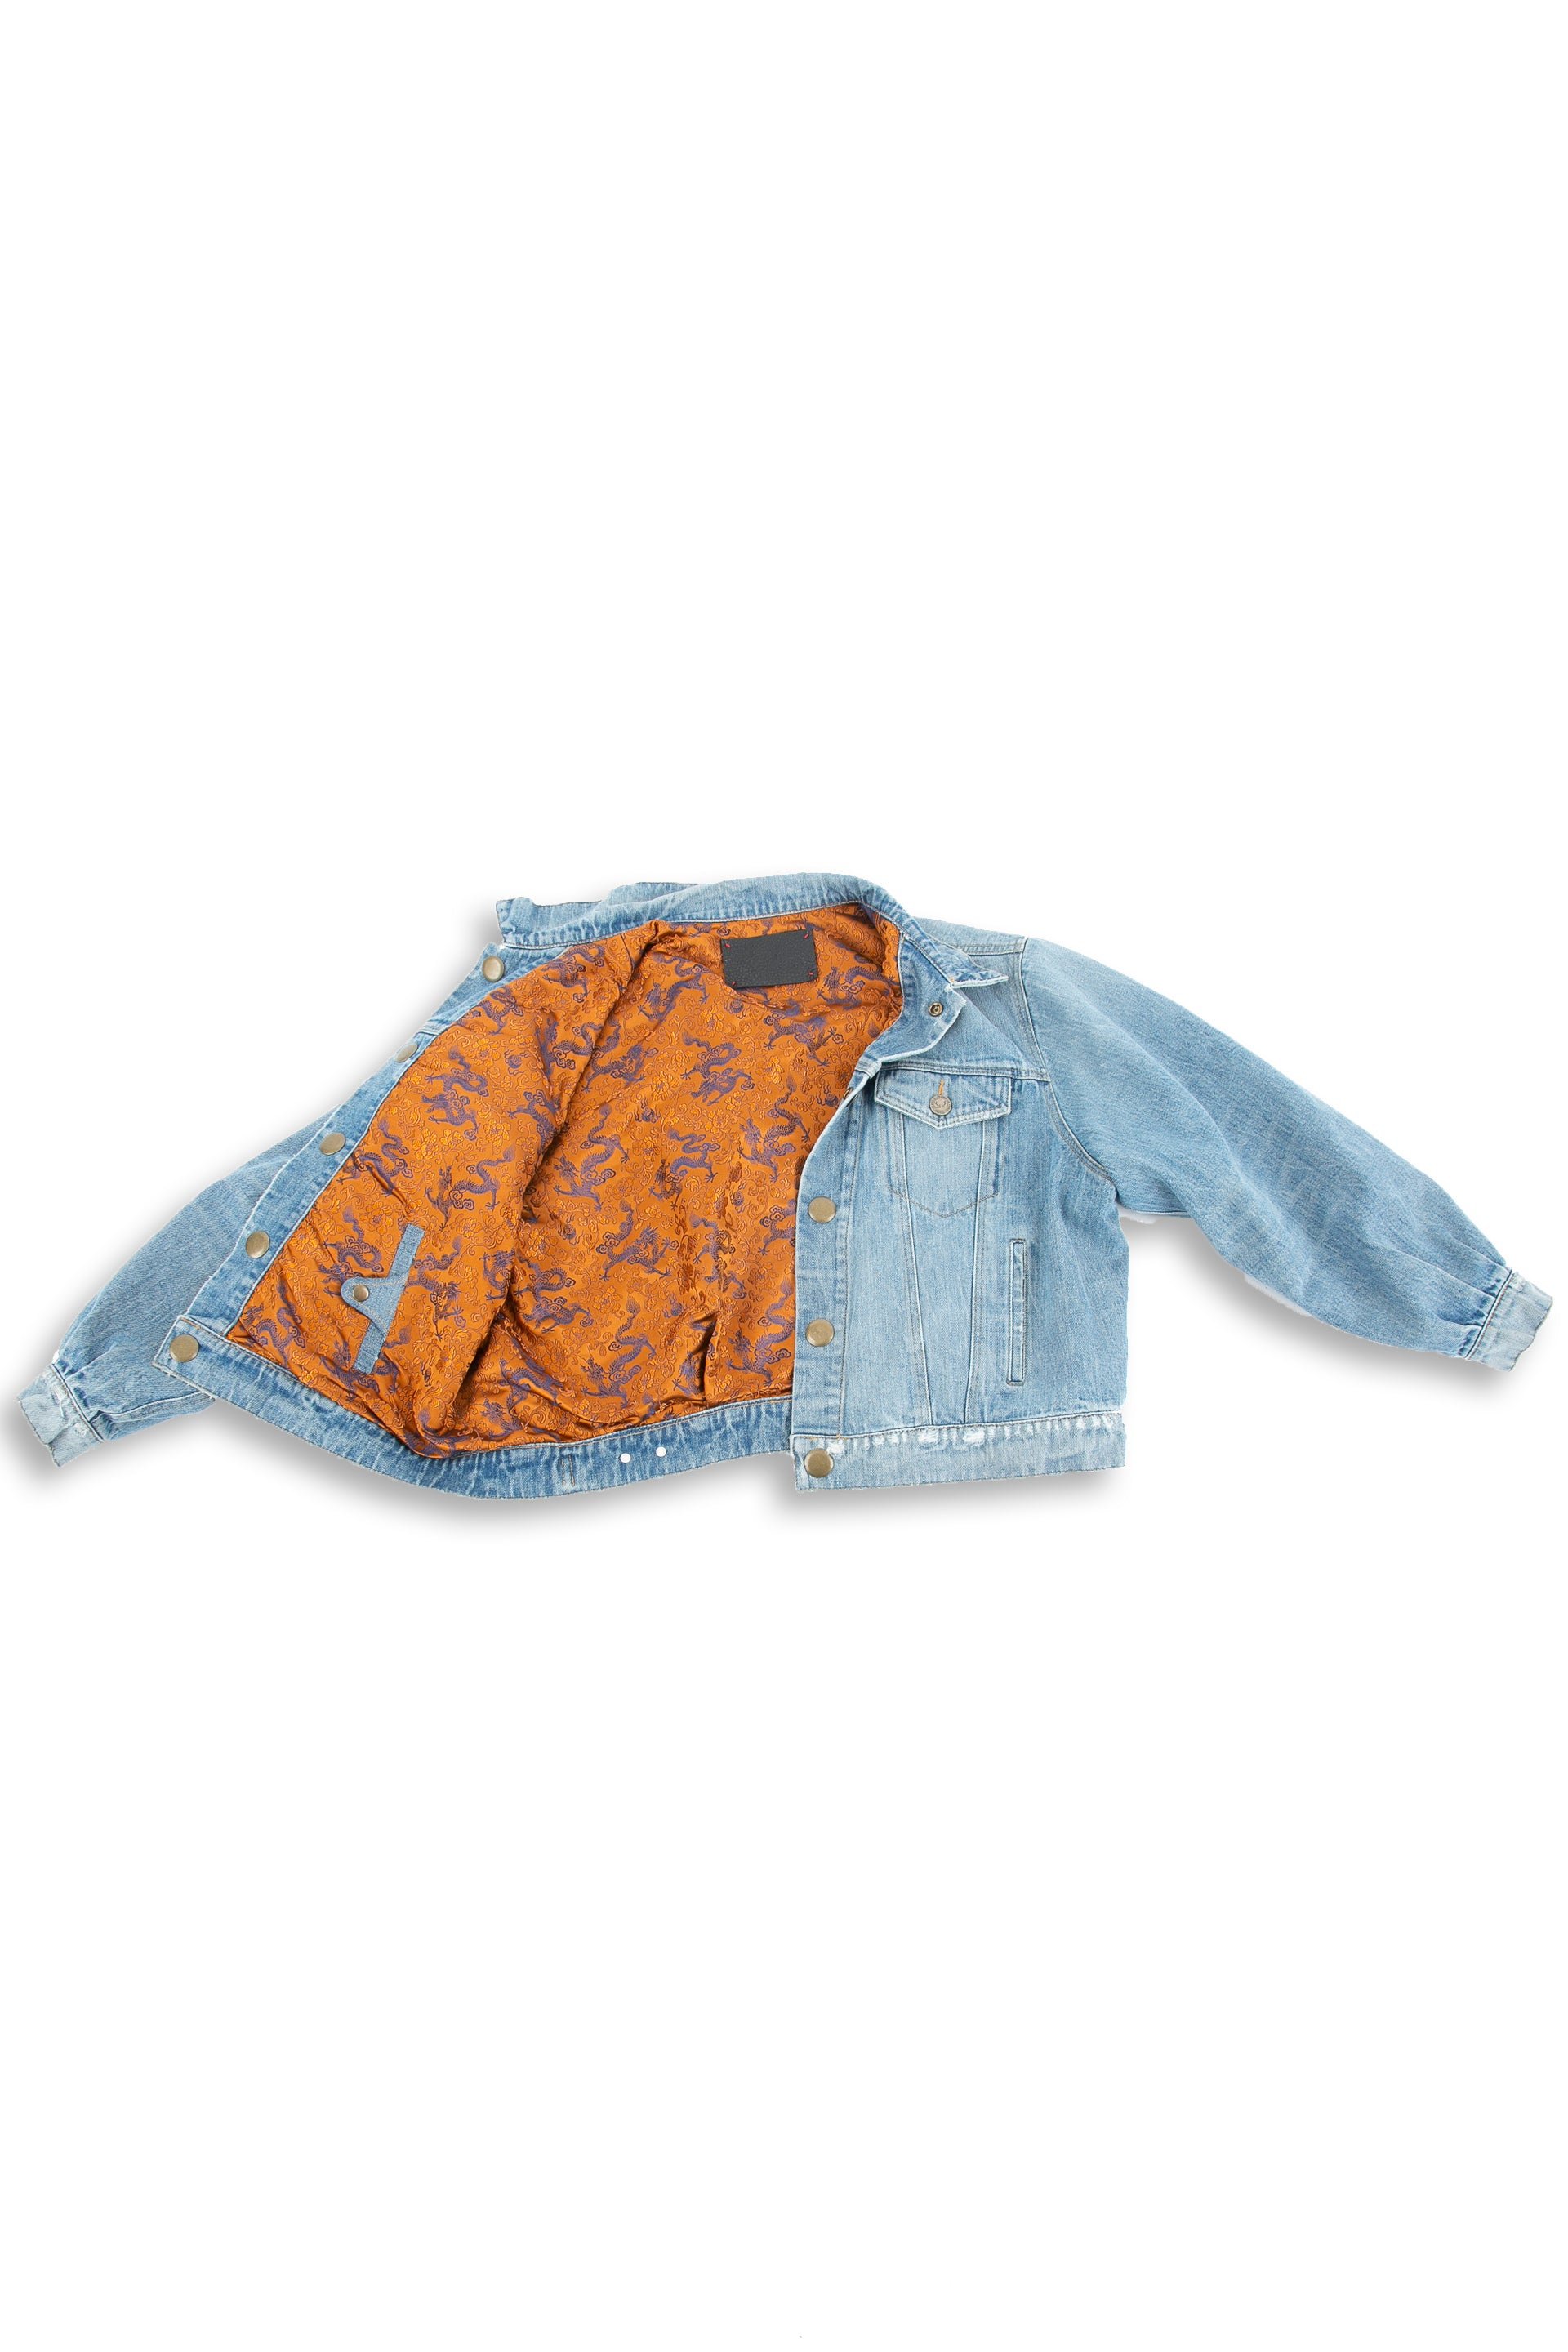 Inside of Dynasty Reversible Denim jacket